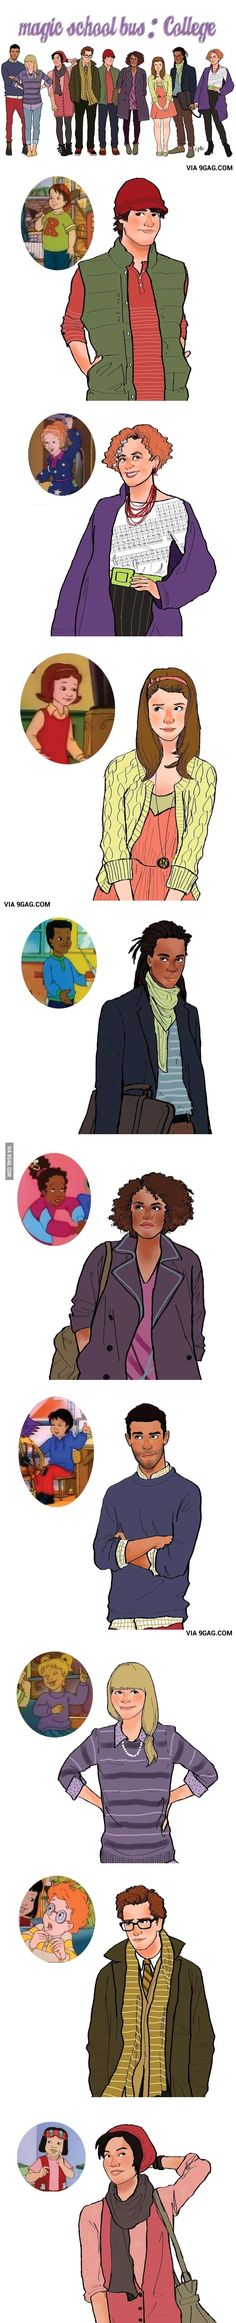 College Aged Magic School Bus Characters- this is pretty much just awesome.